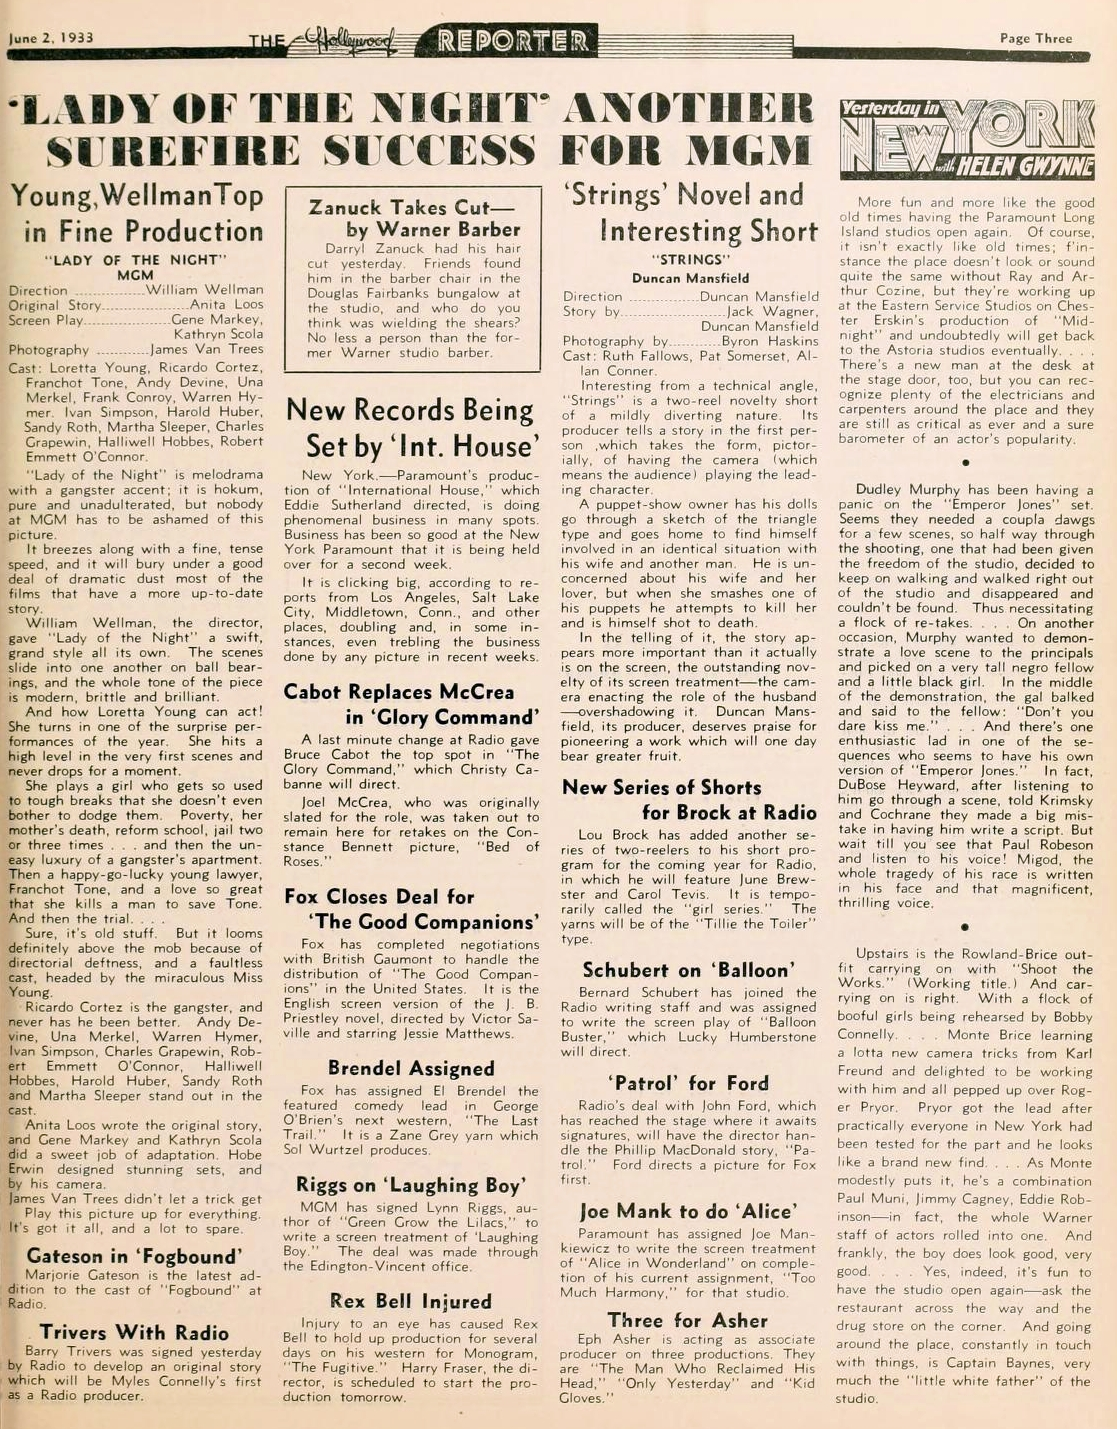 loretta young hollywood reporter 060233